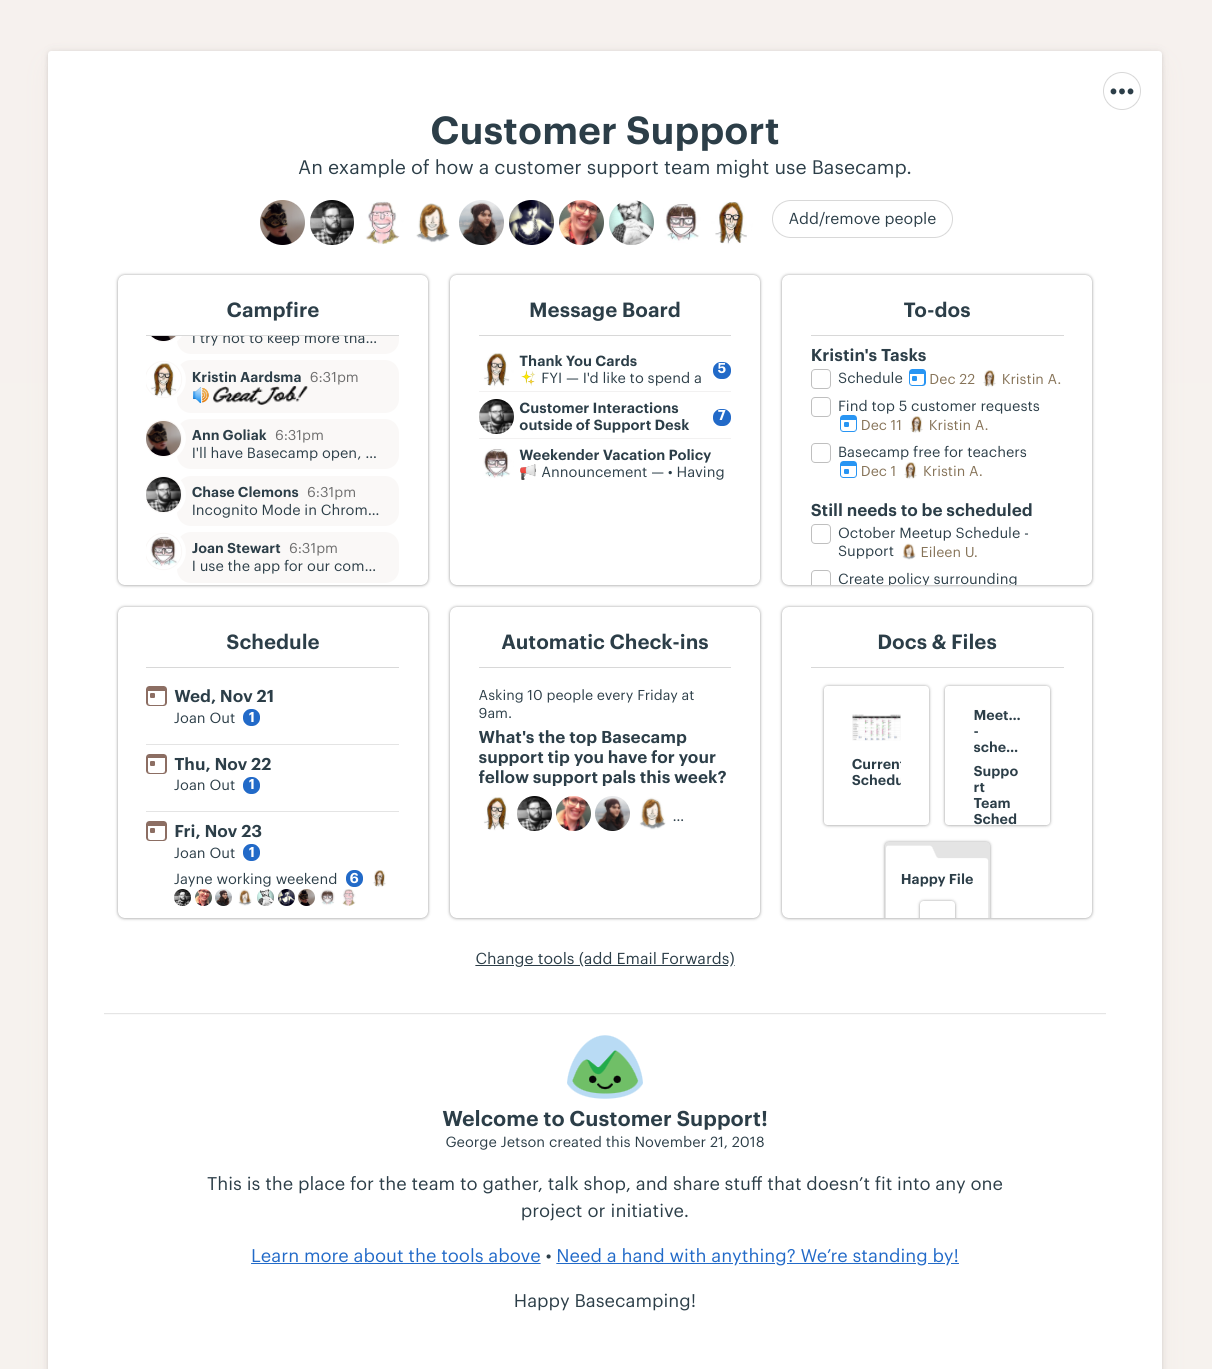 Basecamp's project page